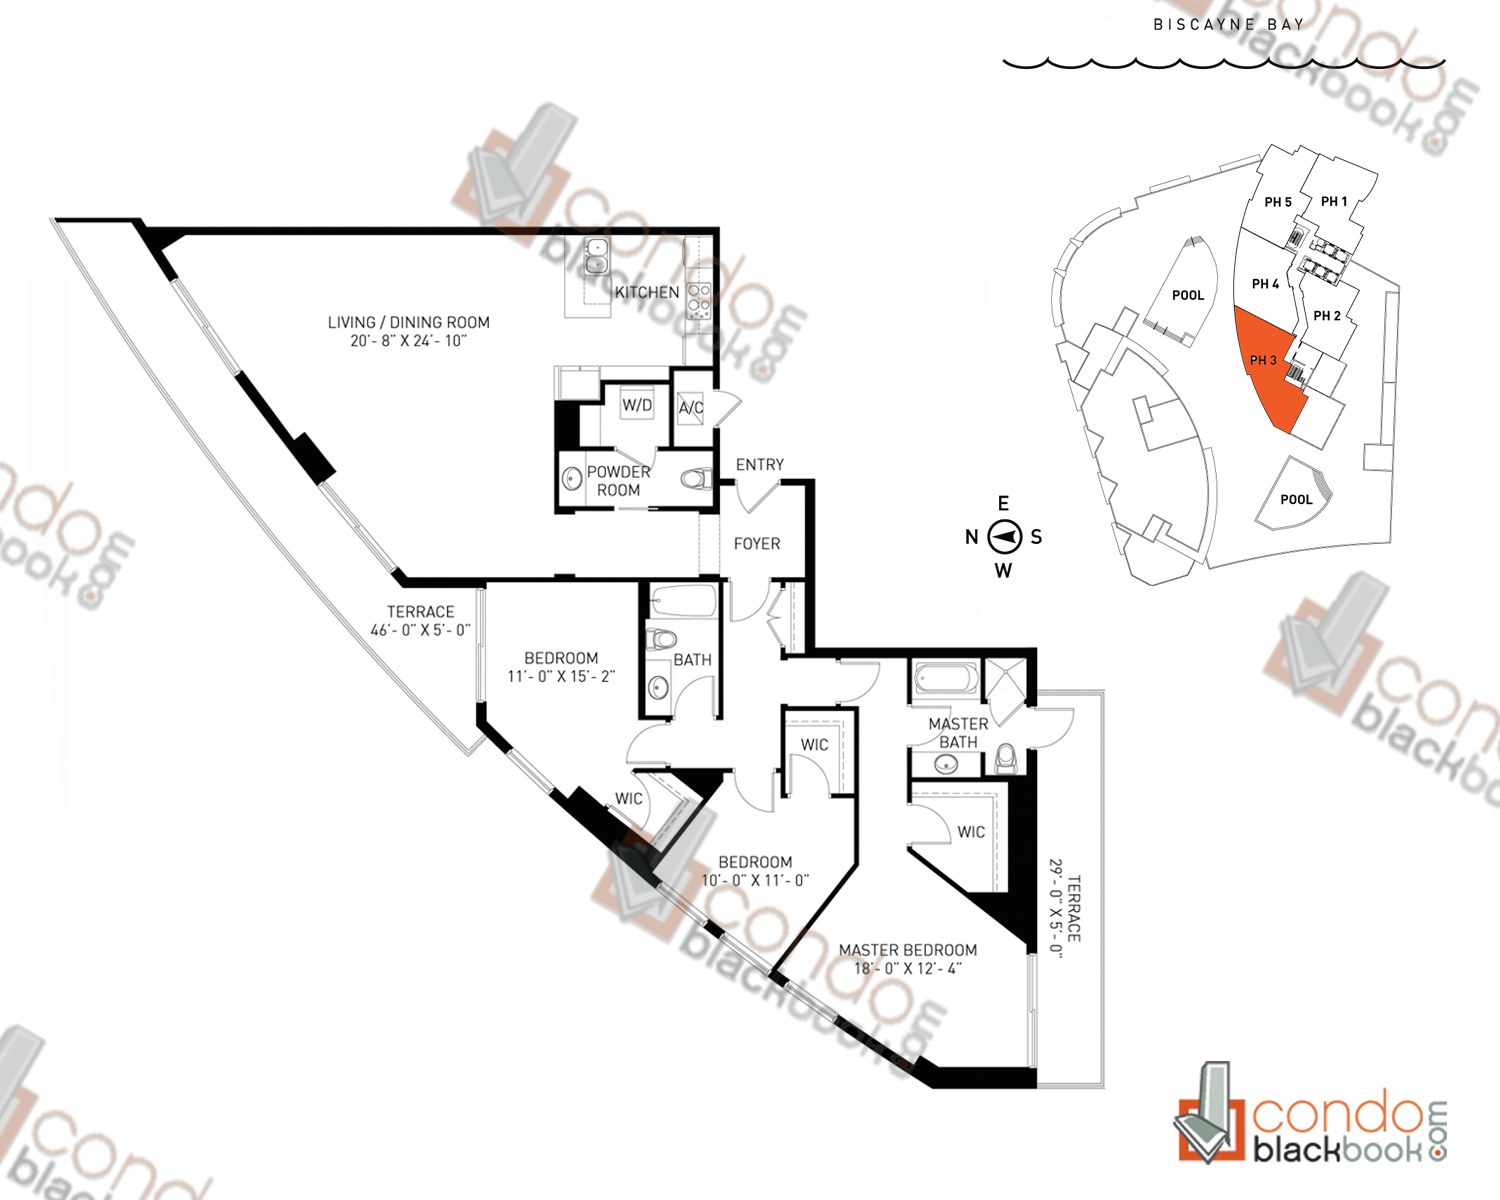 Floor plan for Quantum on the Bay Edgewater Miami, model PH_3, line South Tower - 05, 3/2.5 bedrooms, 1,902 sq ft